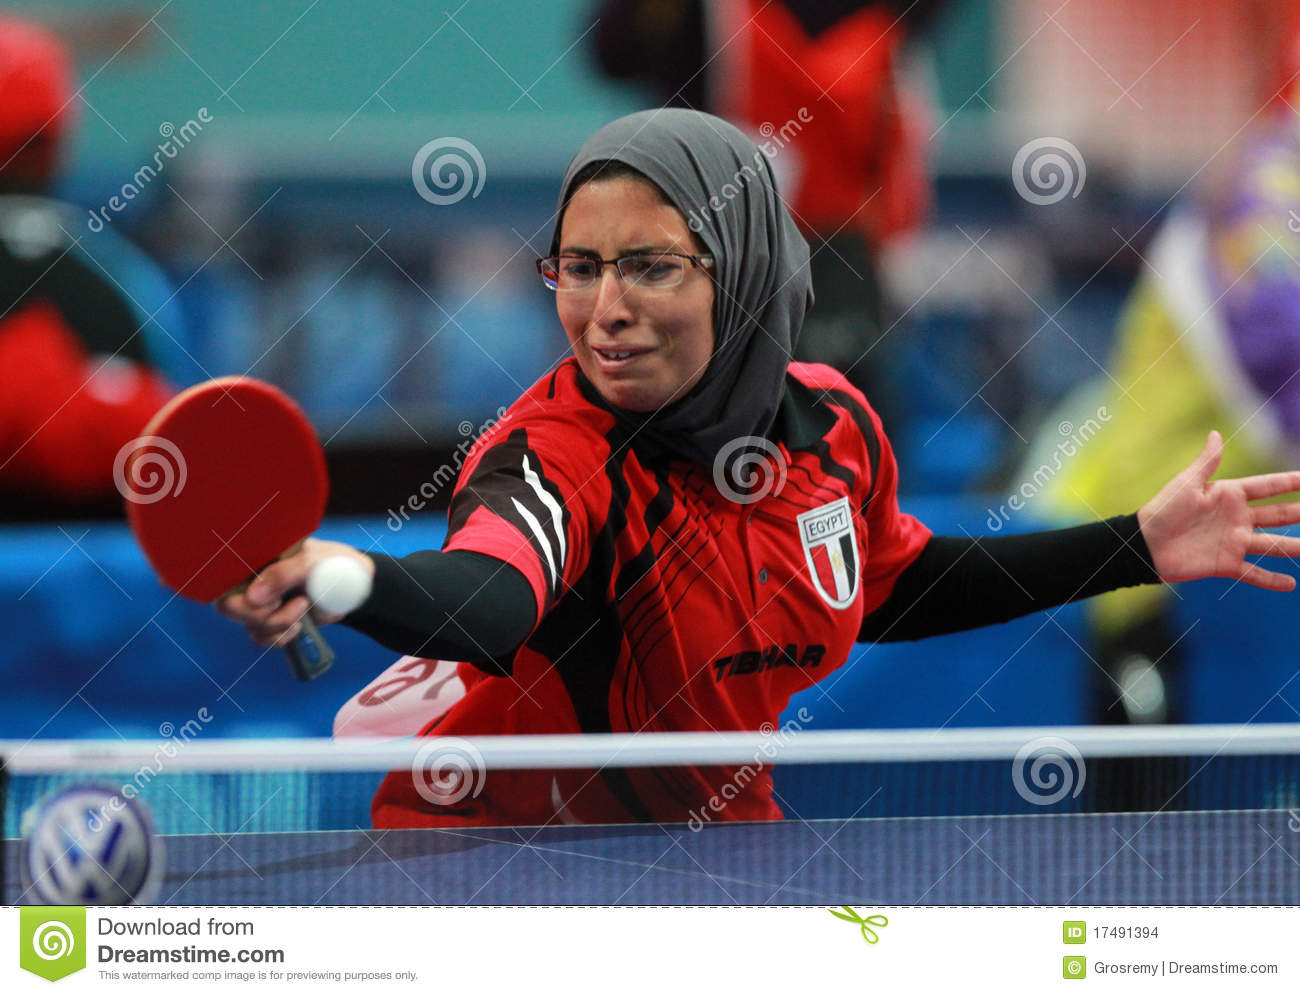 2011 World Table Tennis Championships – Mixed Doubles